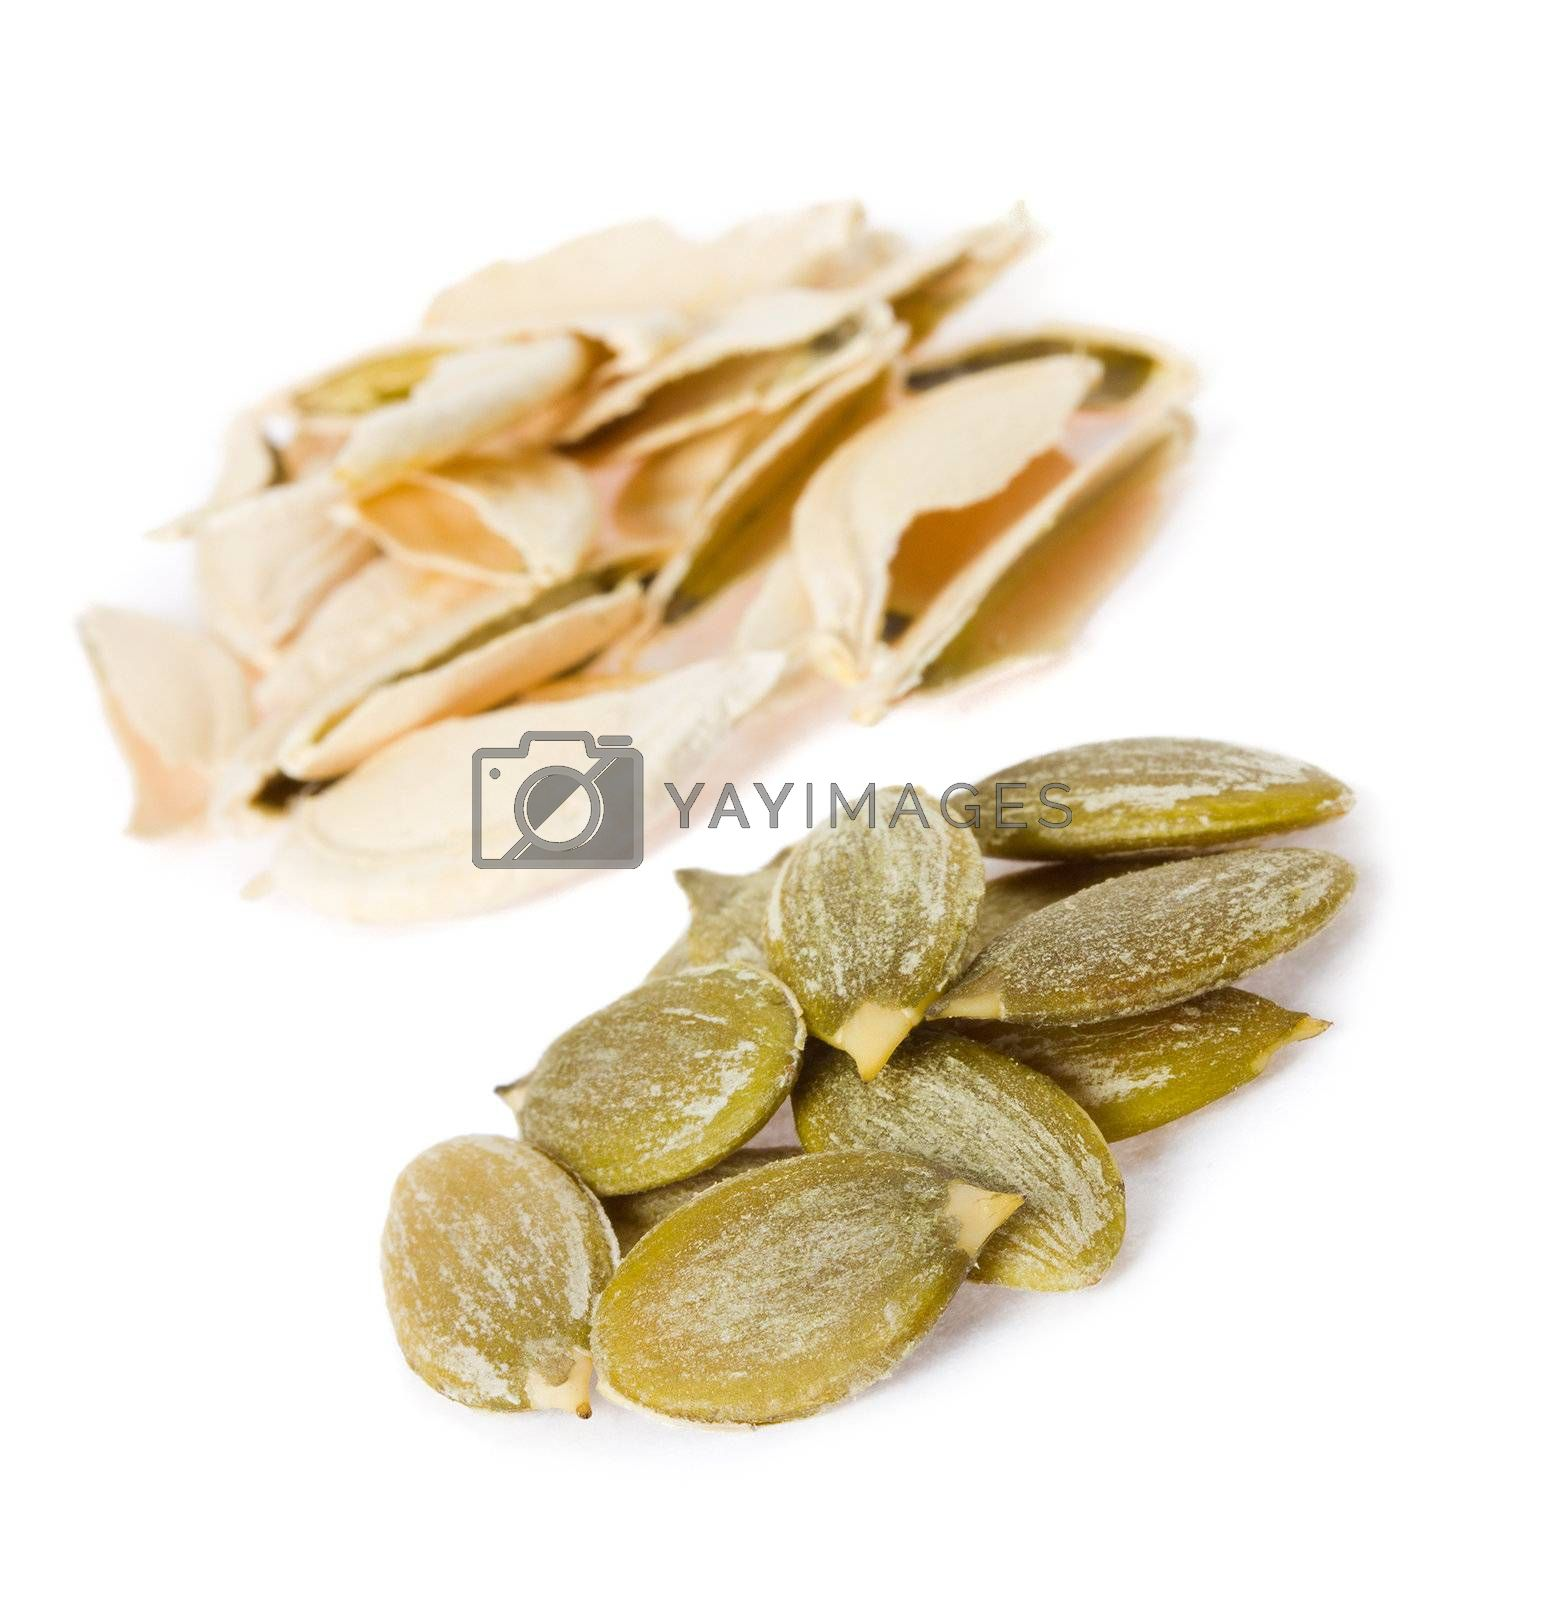 close-up seeds of pumpkin, isolated on white